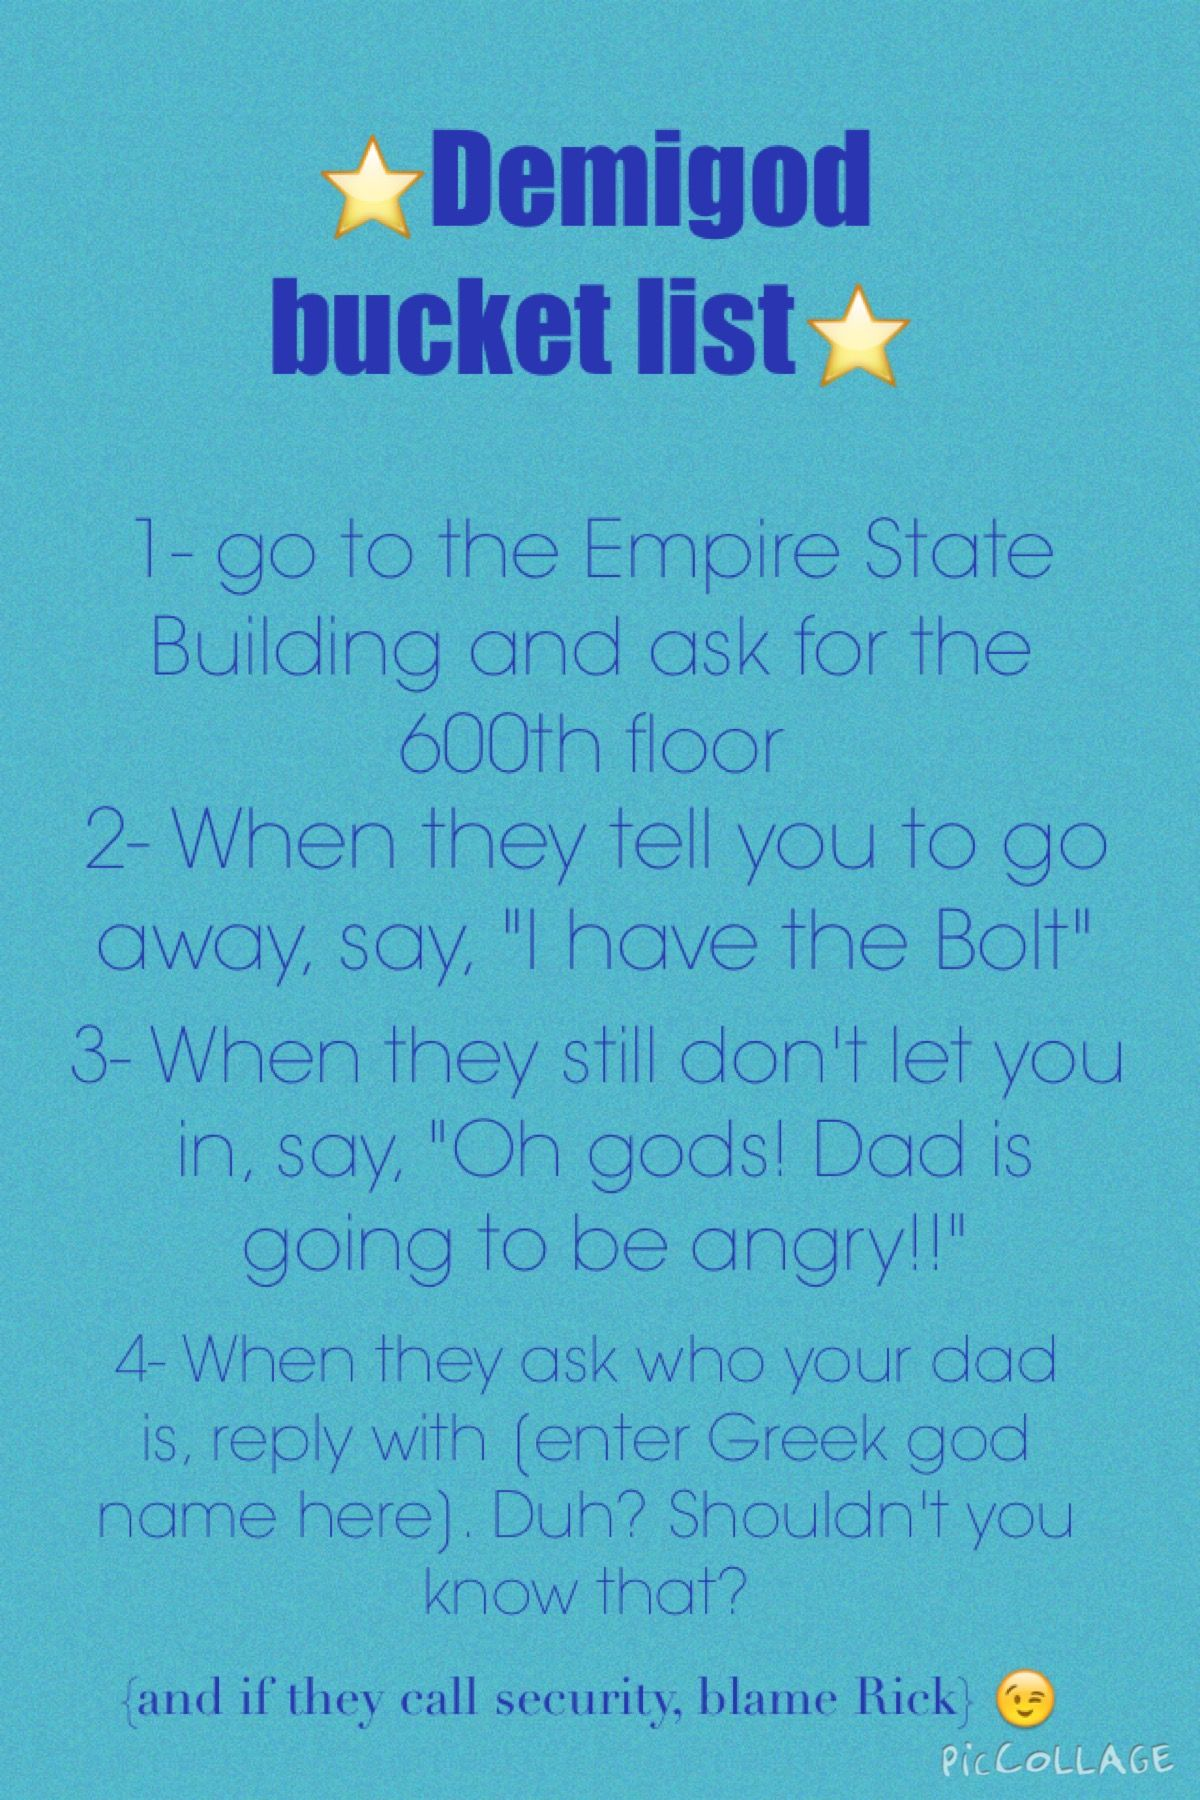 Haha! I totally want to do this!!!